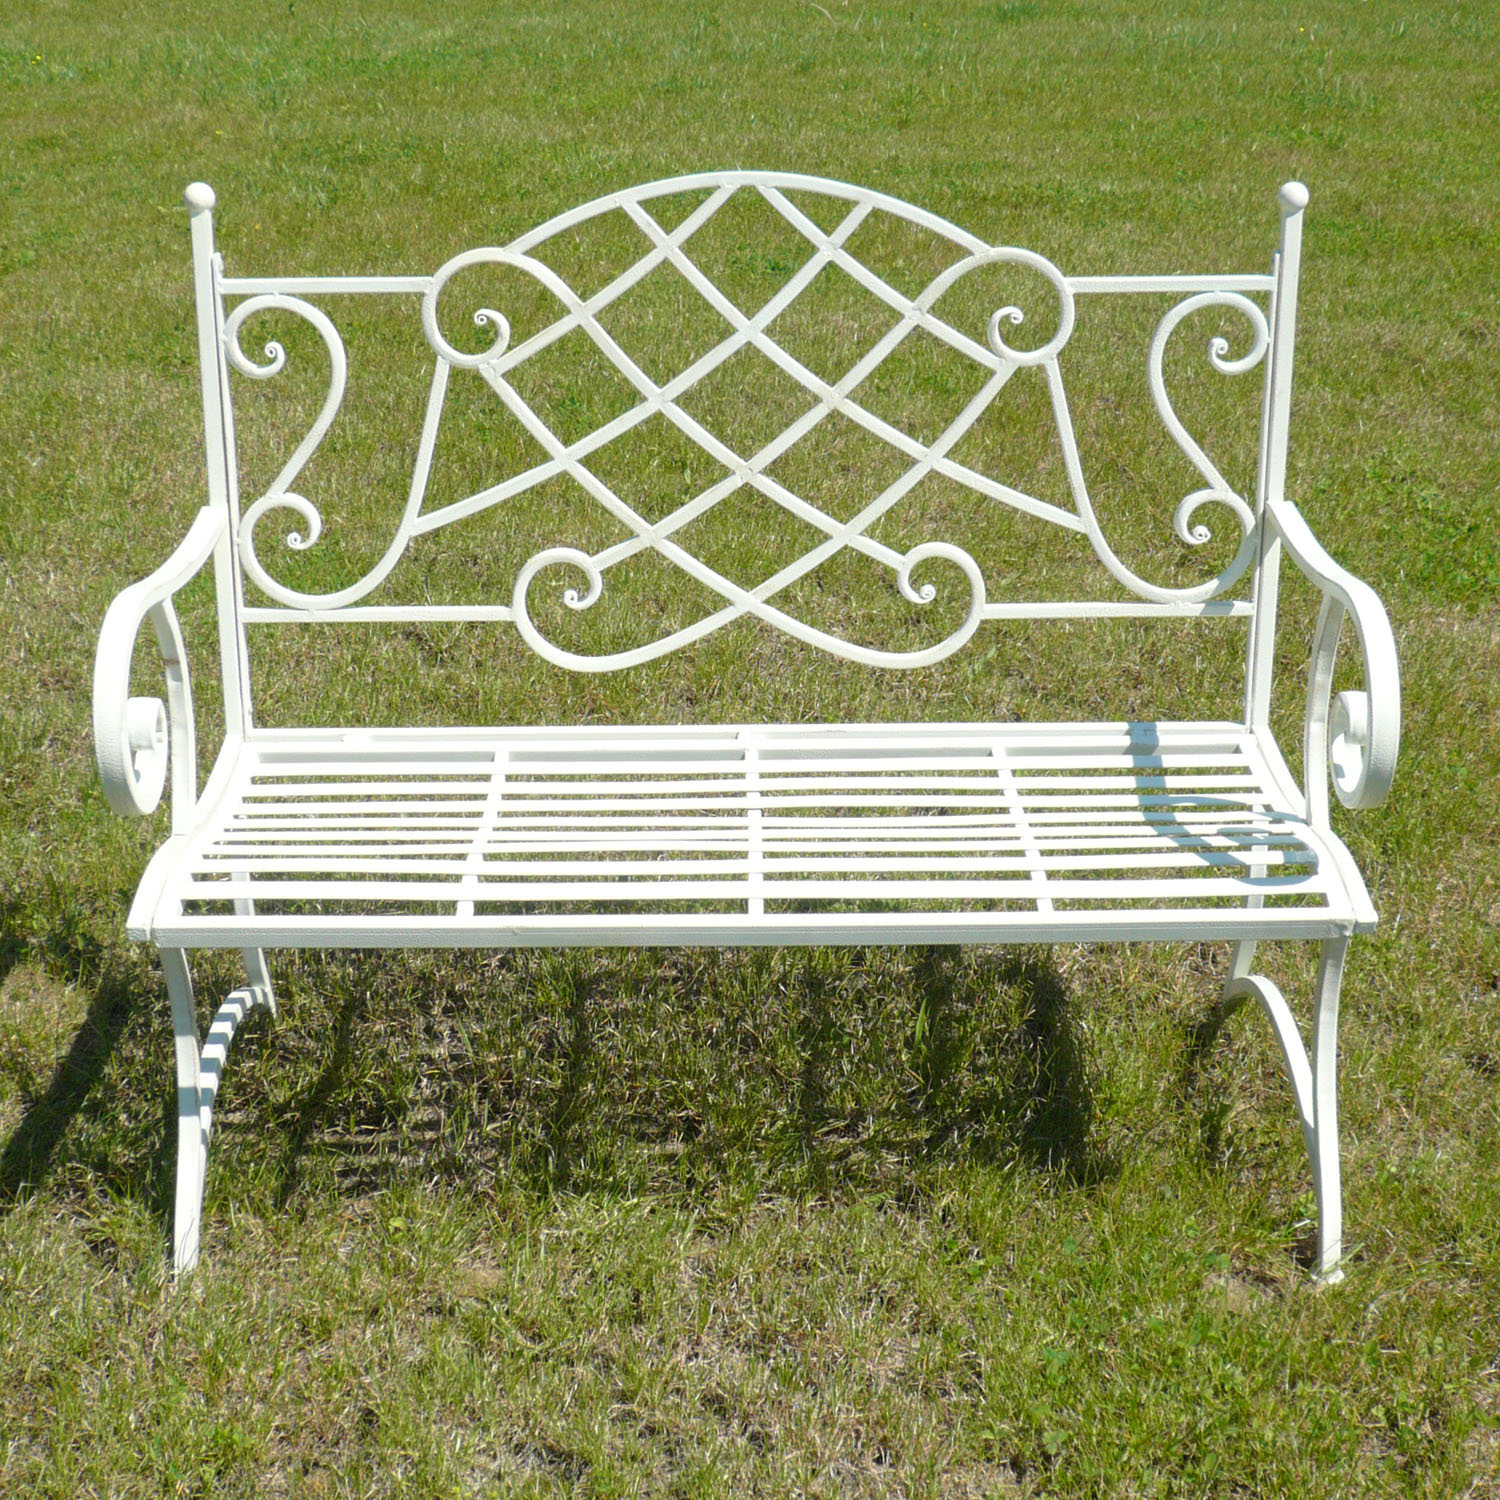 garden bench wrought iron tables chairs benches. Black Bedroom Furniture Sets. Home Design Ideas